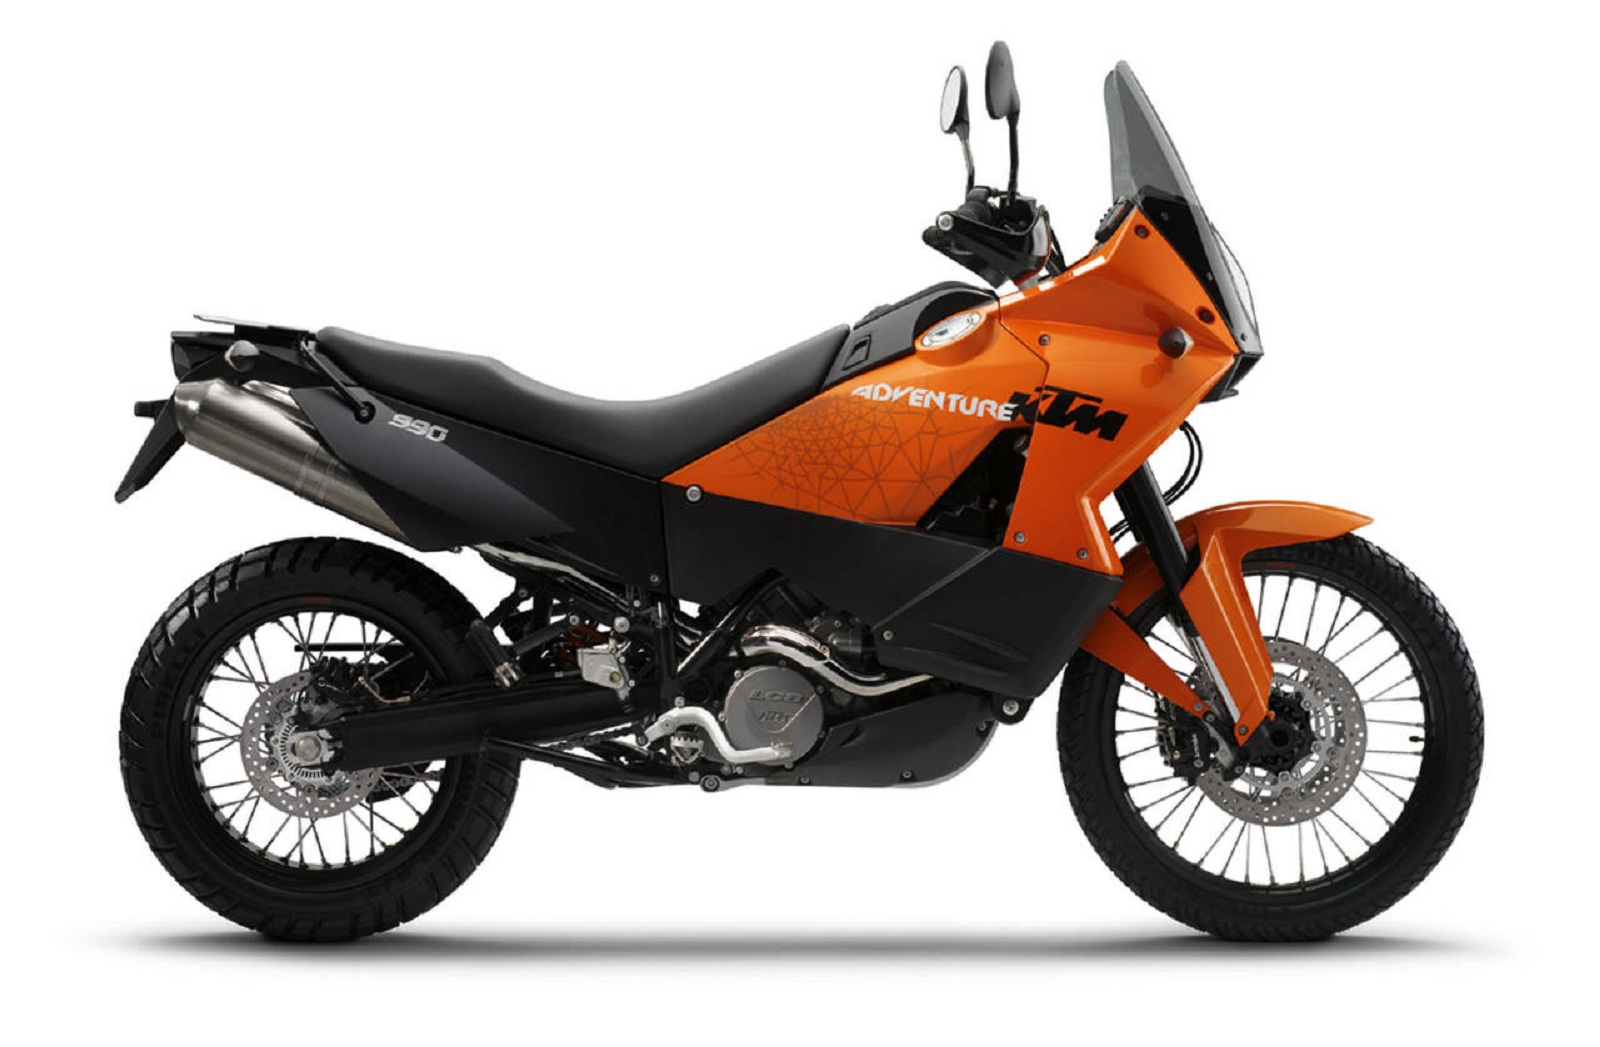 2012 KTM 990 Adventure Review - Top Speed